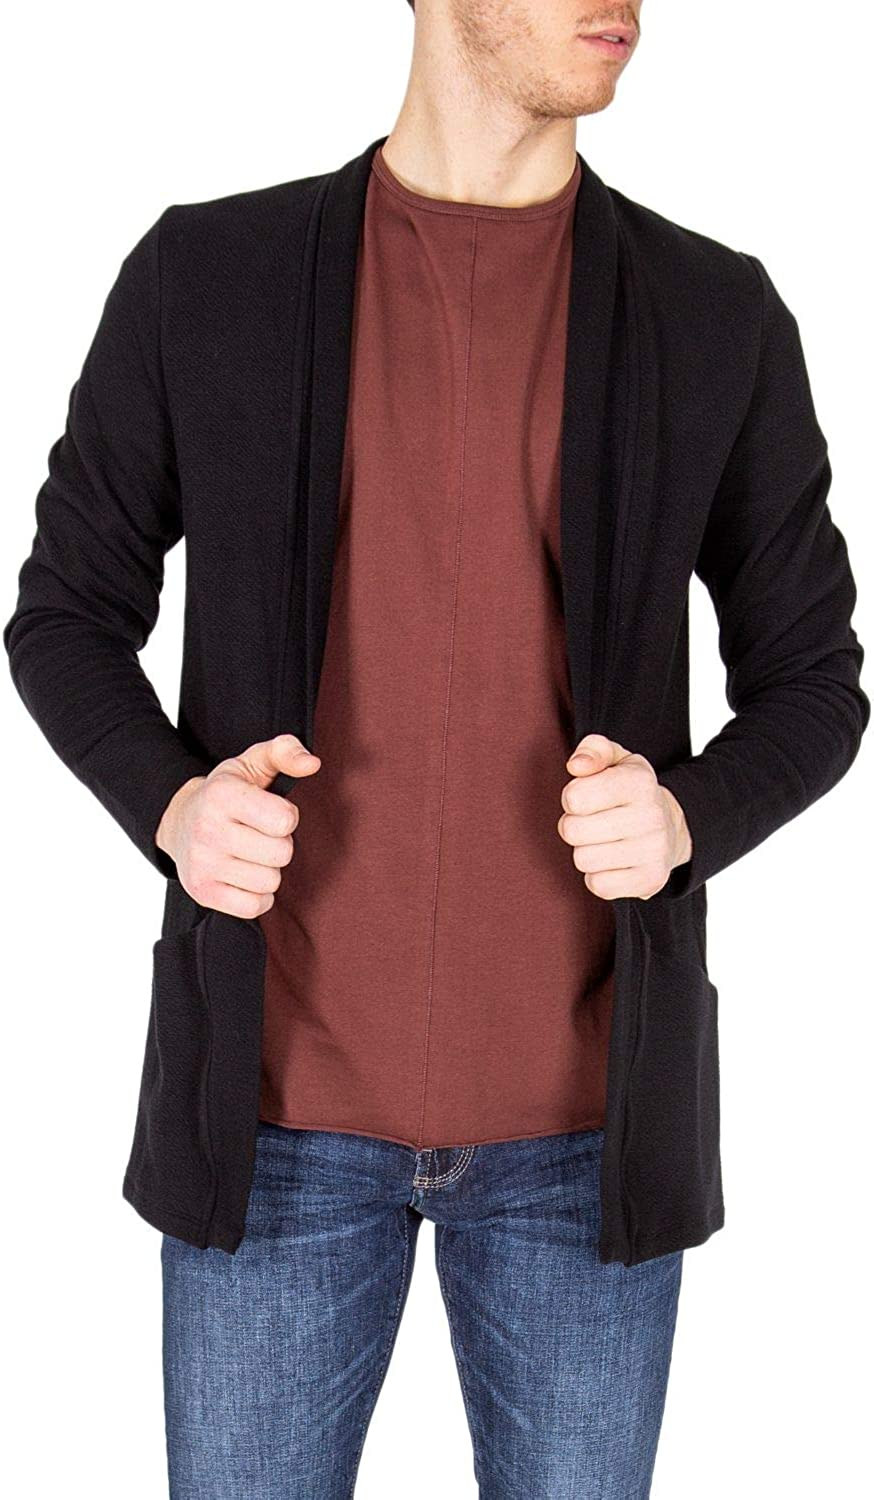 Season Outlet Antony Morato Luxury Fashion Mens MMFL00516FA150110BLACK Black Cardigan